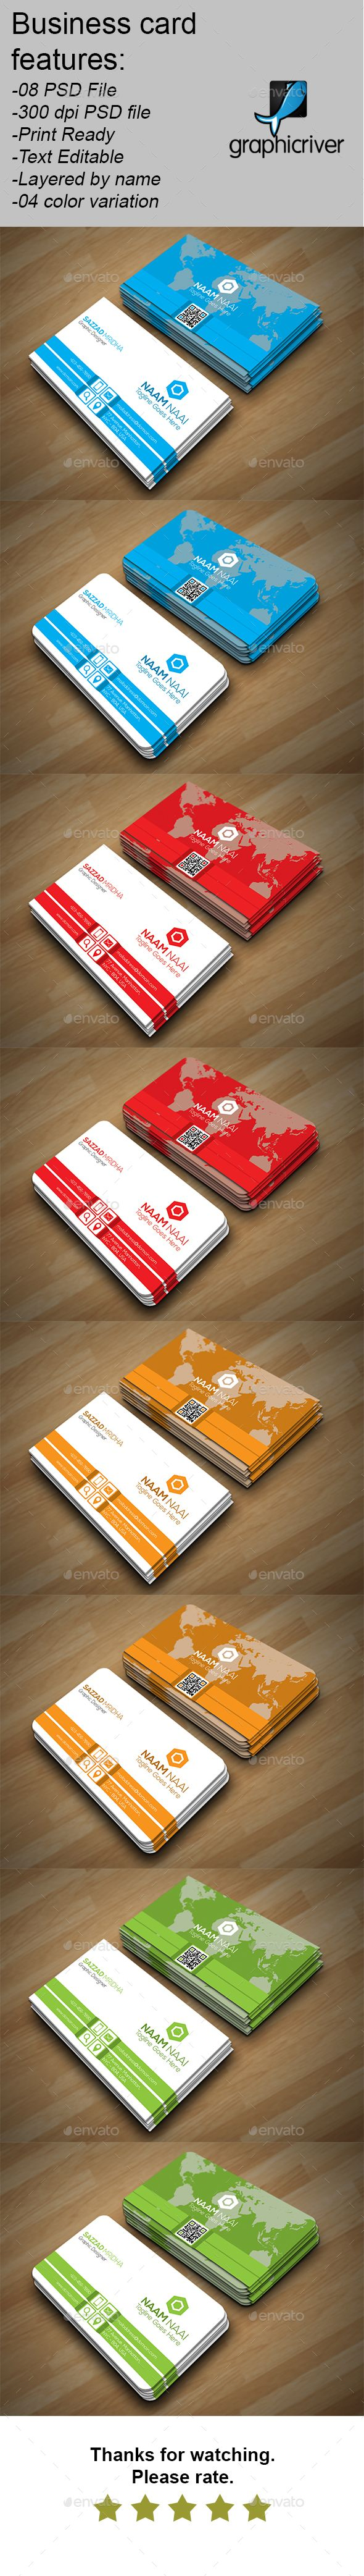 26 best free business card template psd images on pinterest